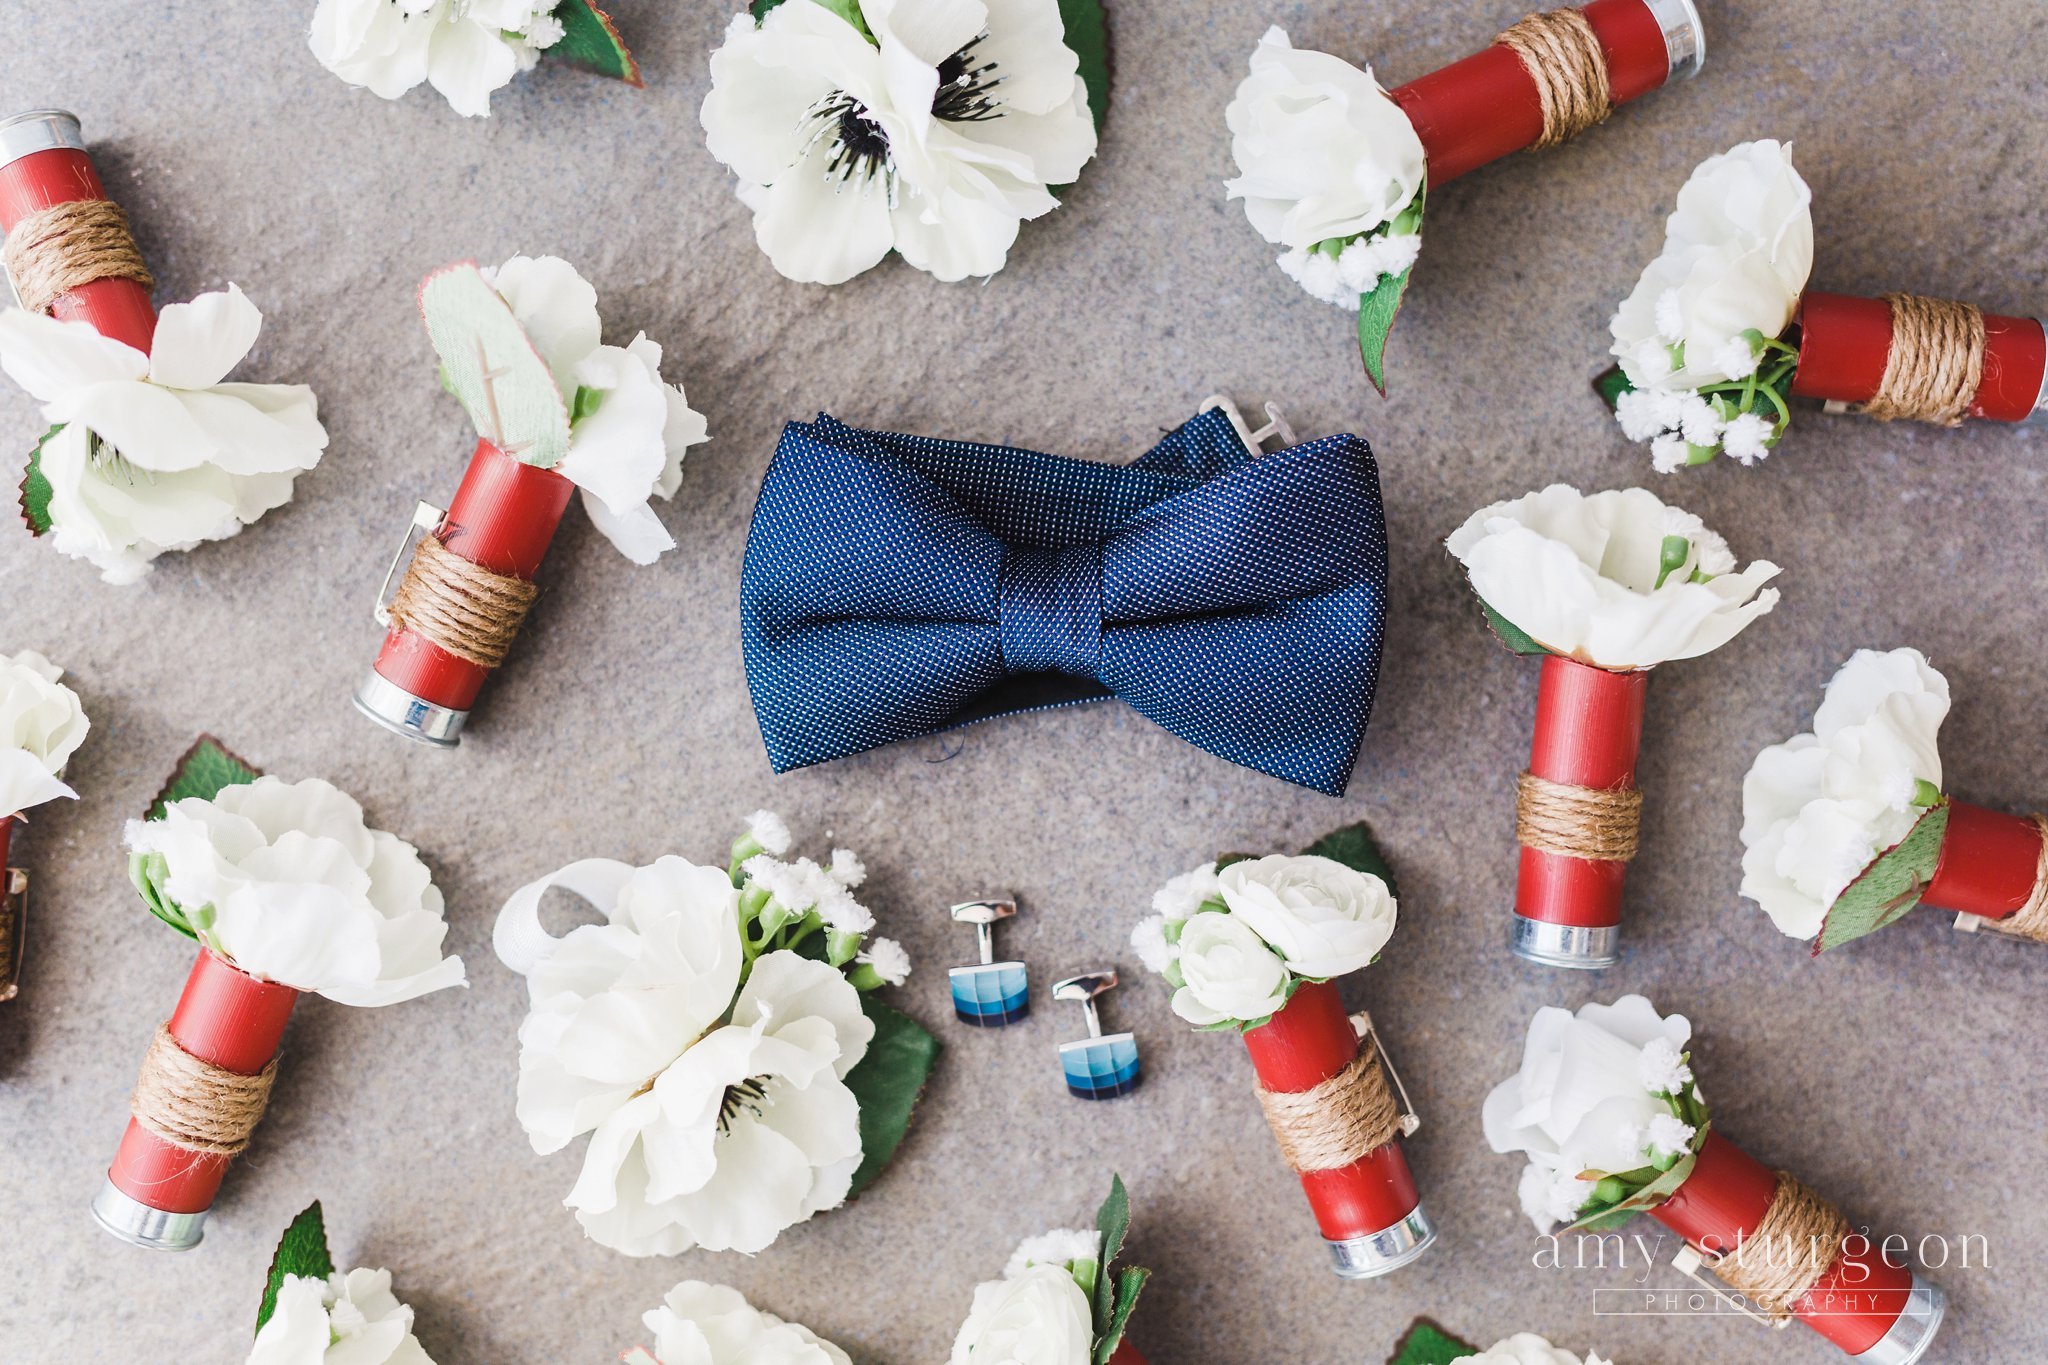 Homemade shell casing boutonnieres at the Canadian Aviation Museum Wedding